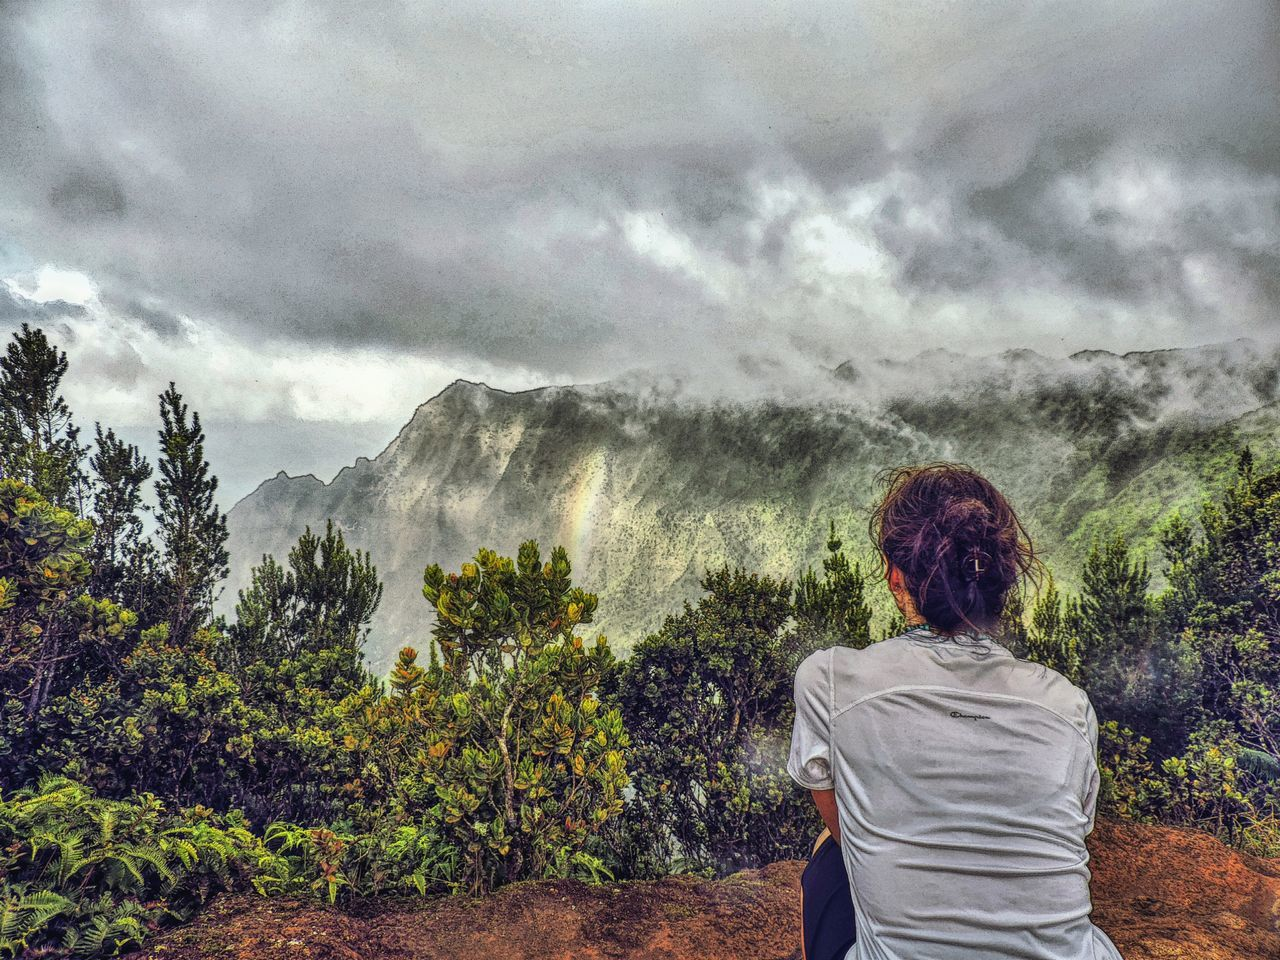 Lookout Mountain Kalalau Lookout Kauai♡ Kauai Hanging Out Taking Photos Hello World Relaxing Enjoying Life Cliffside Cliffs Valley View Lookout Hawaii View From Above Fog Nature Photography Mountains